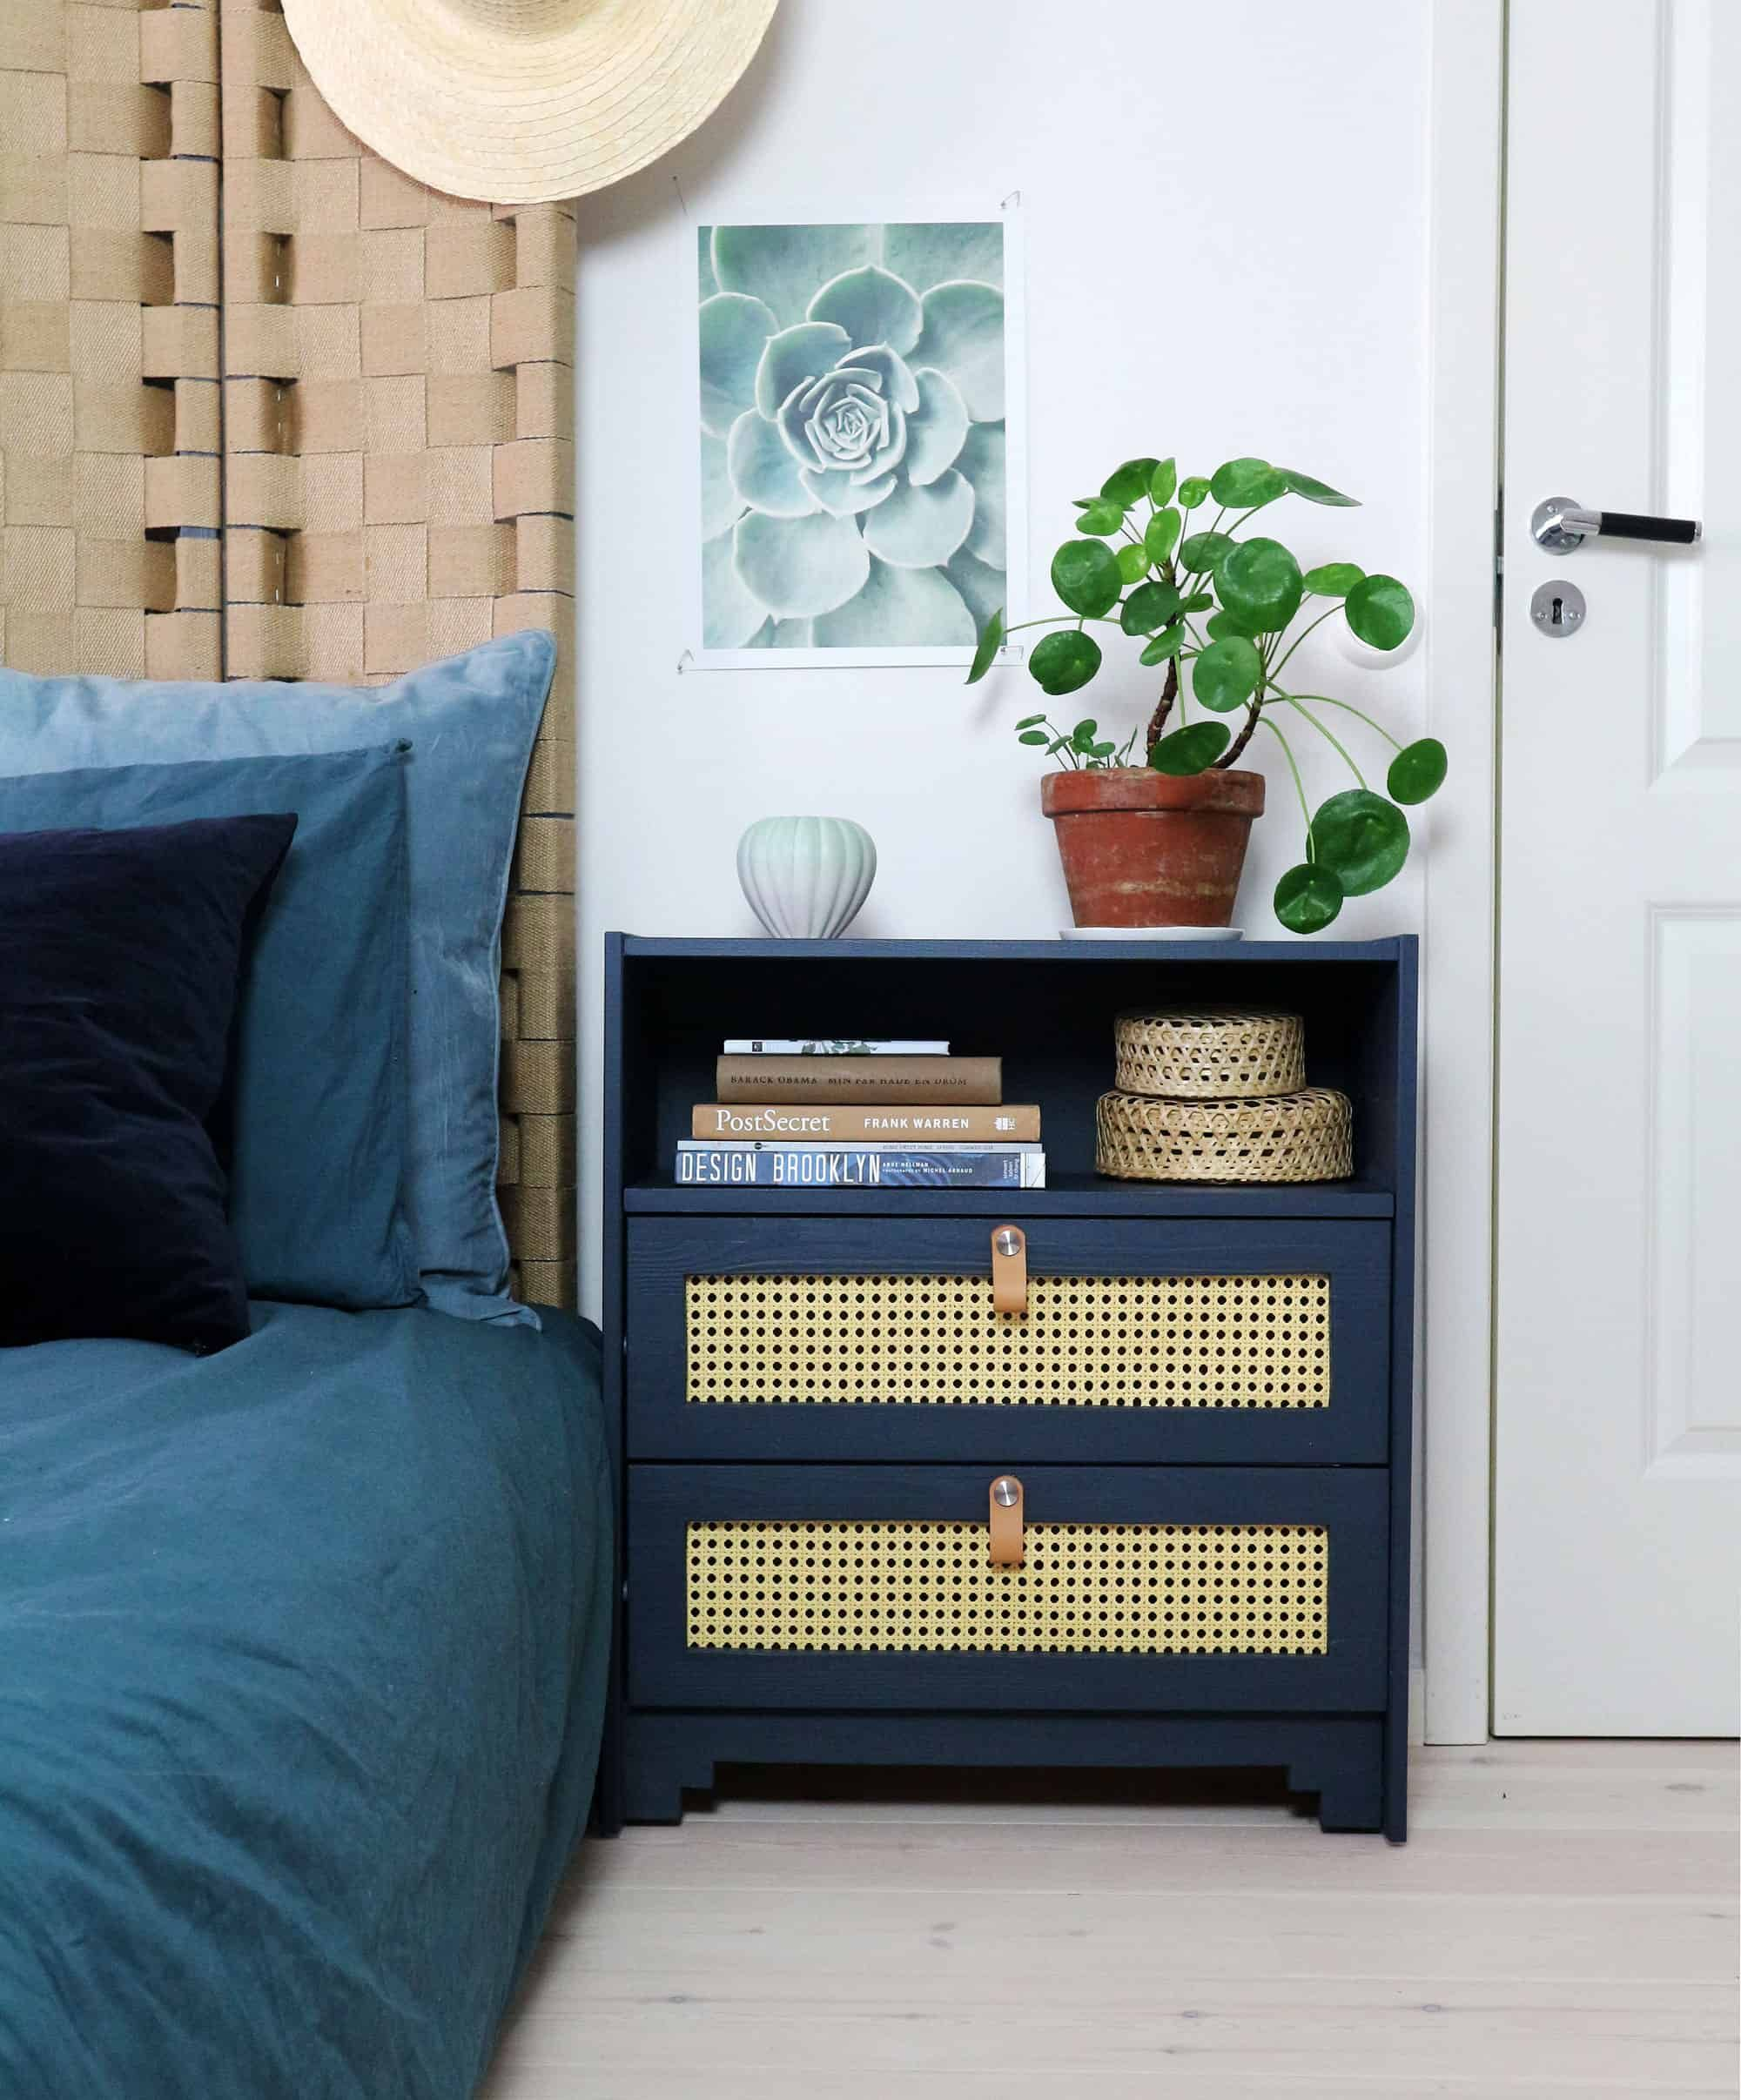 Ikea Hack Rast You Transform A Regular Pine Bureau With Trendy Details Home Diy